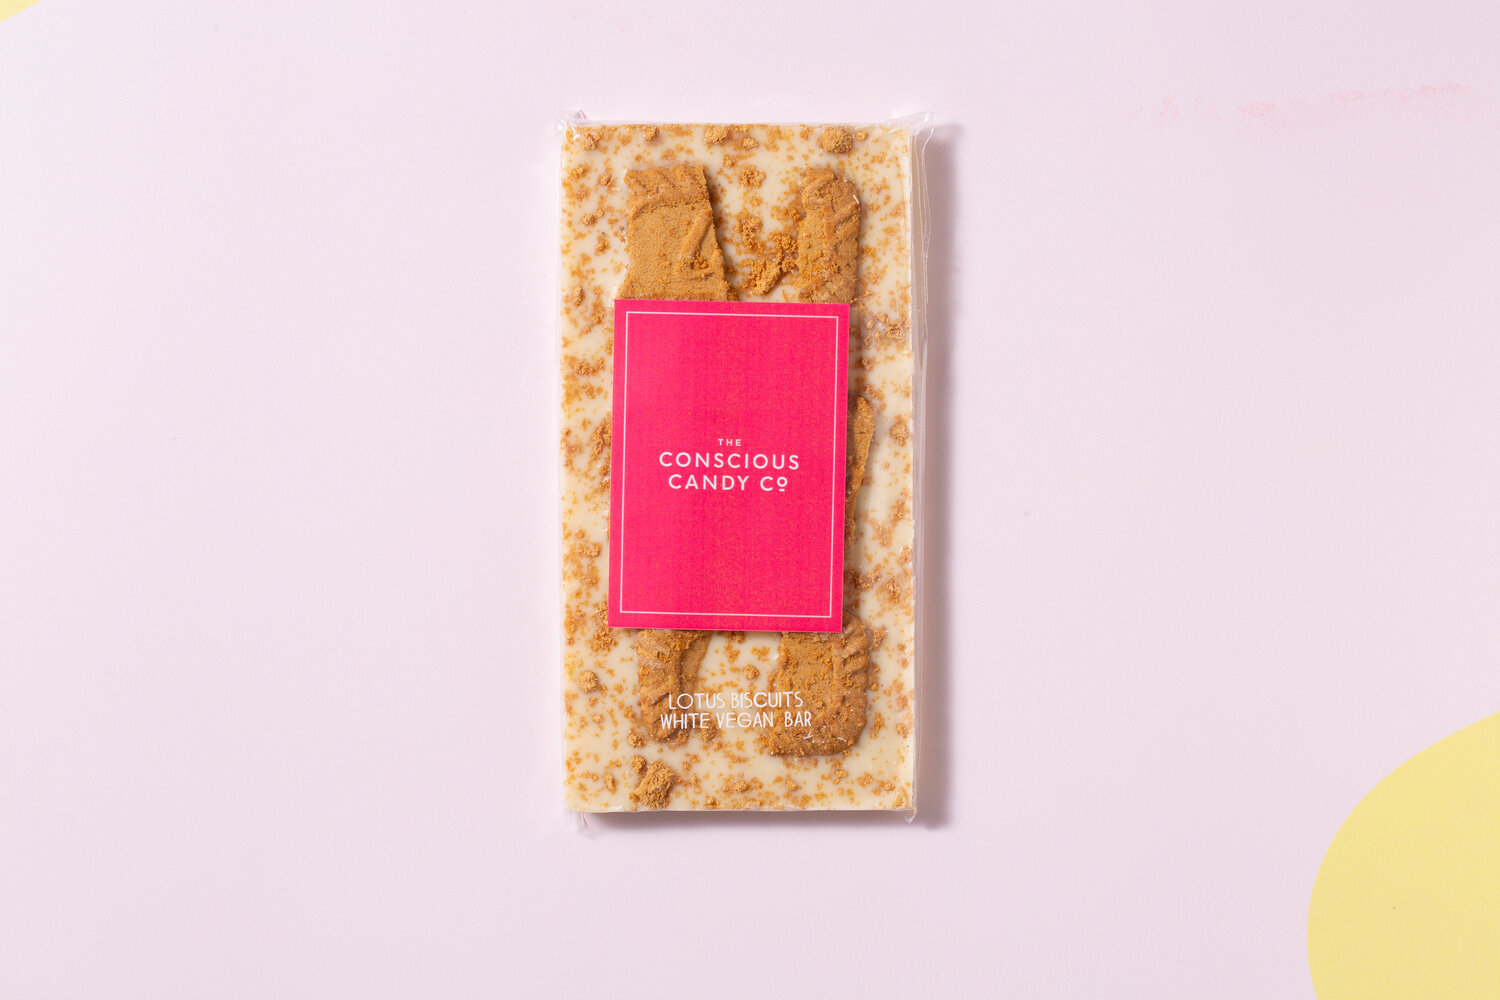 Conscious Candy Co - 'White' Biscoff Chocolate Bar